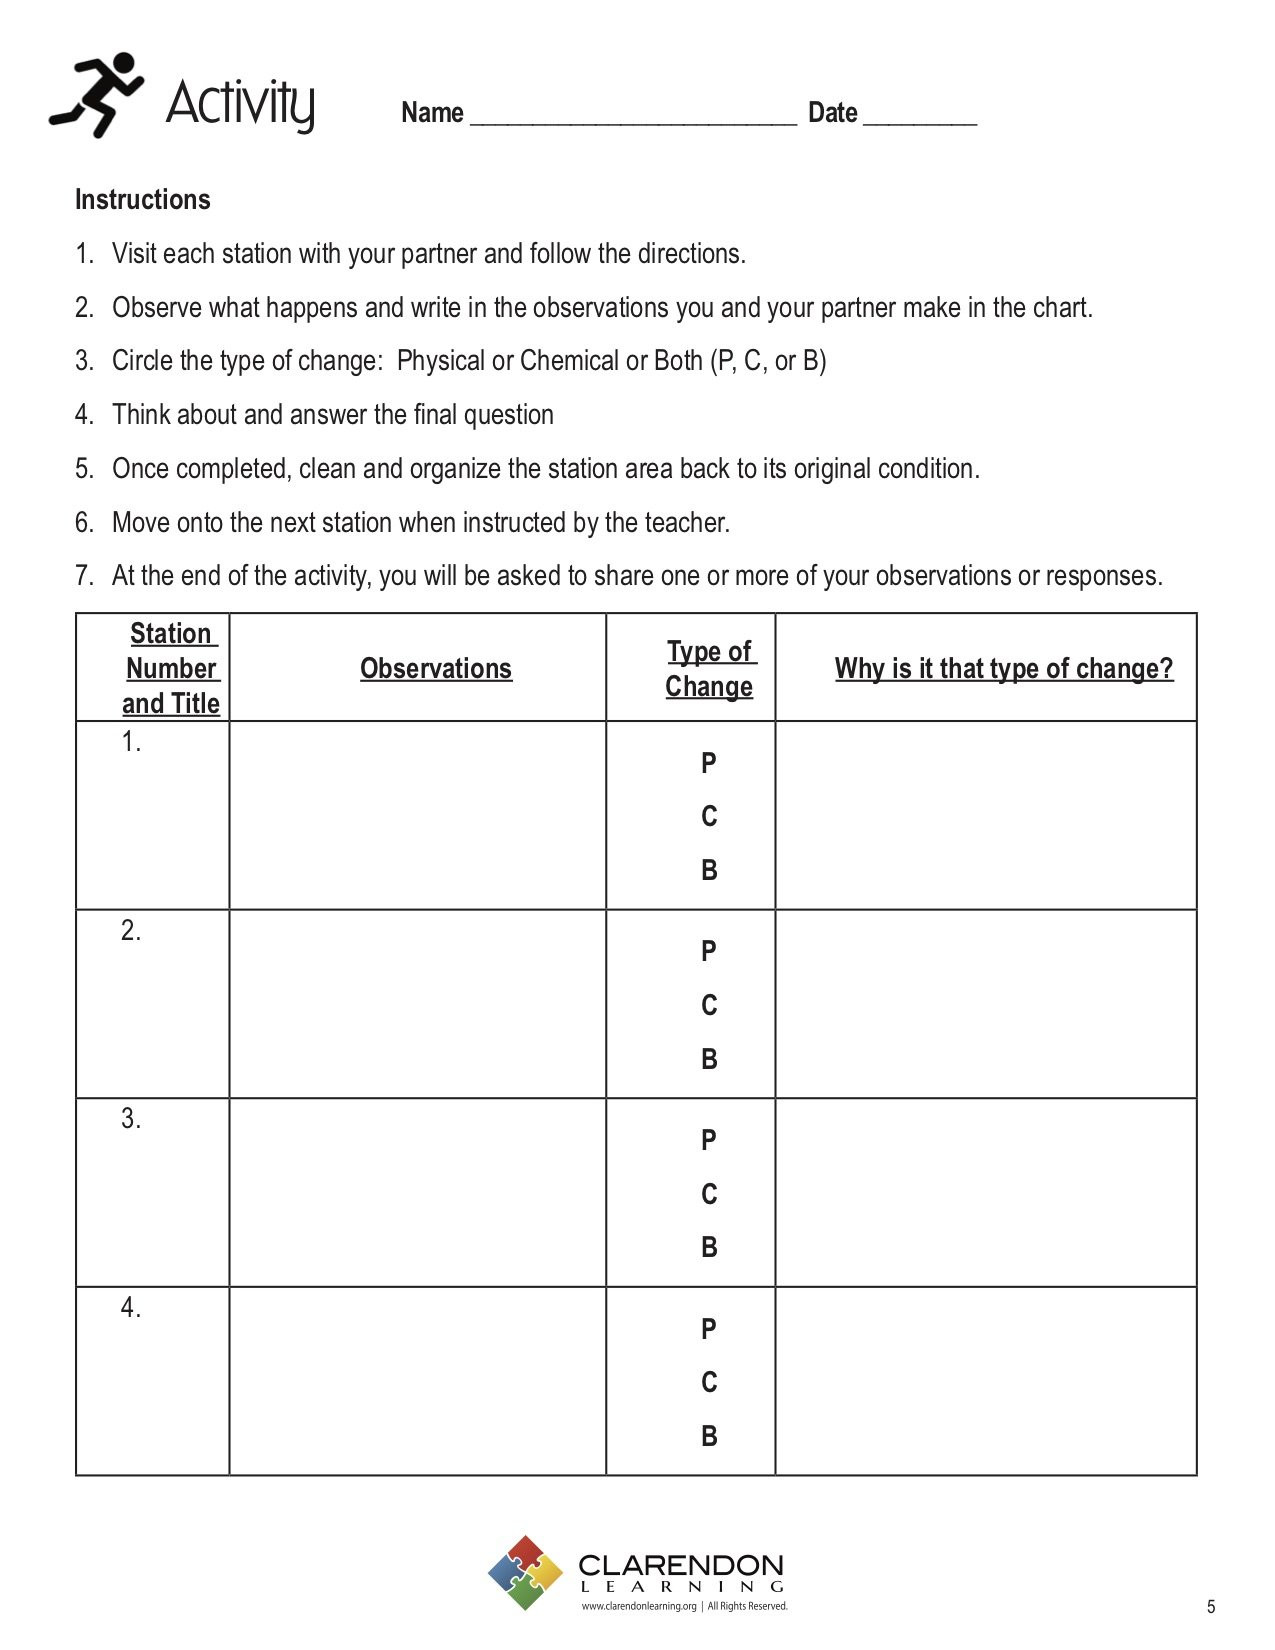 30 Simplify Rational Expressions Worksheet